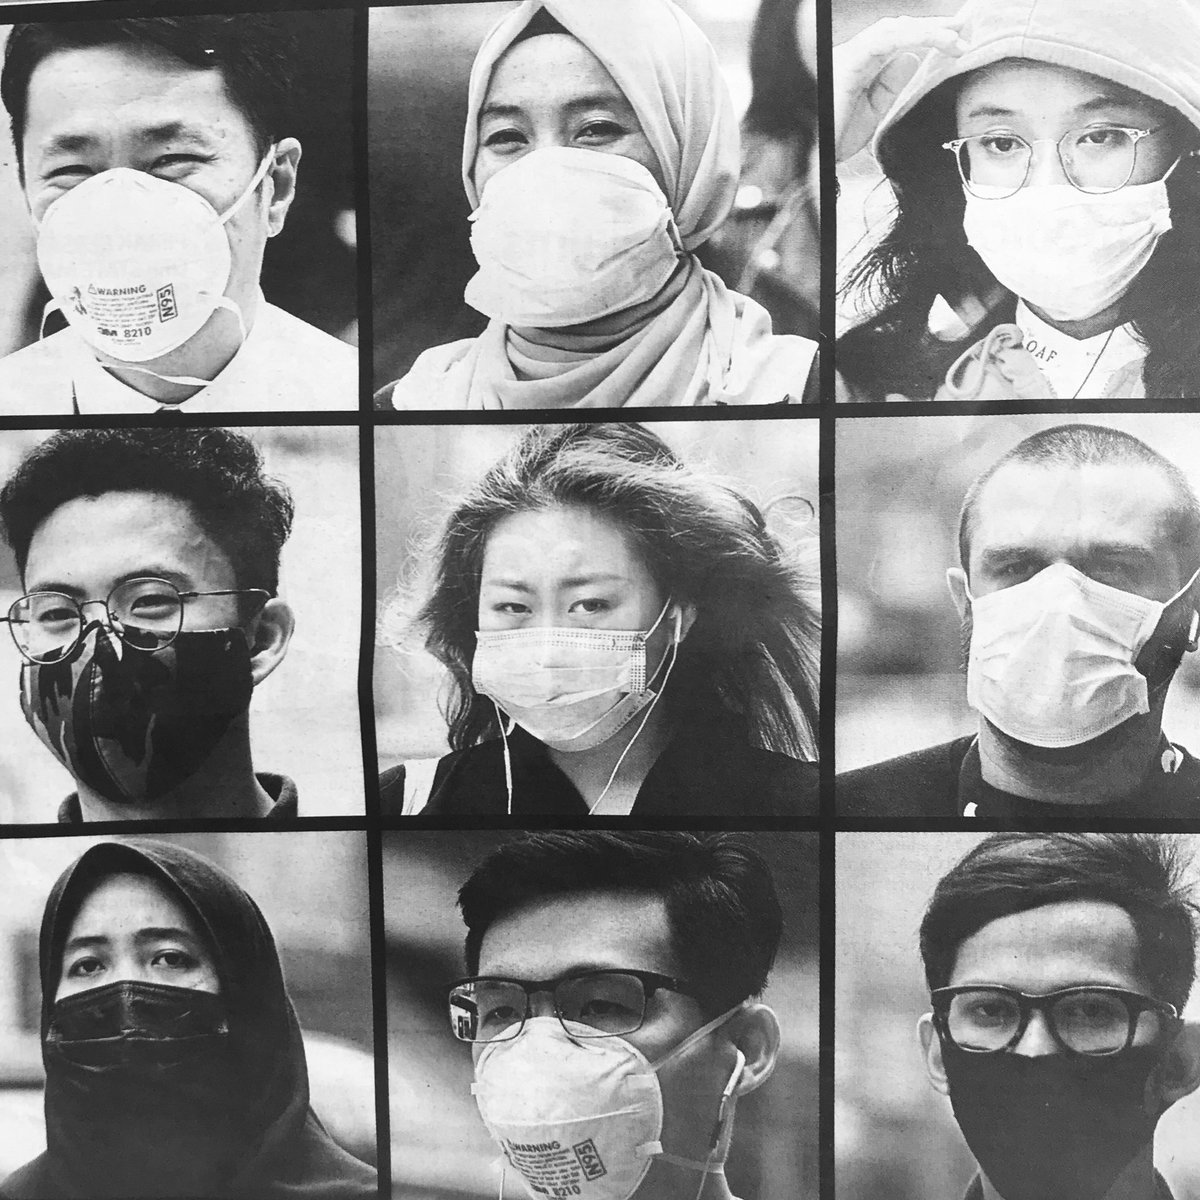 What's your style, #kualalumpur ?  Does #Singapore have different fashion? #malaysia #hazemalaysia #haze #Singapore #hazesingapore https://t.co/PeMx6fWRKv